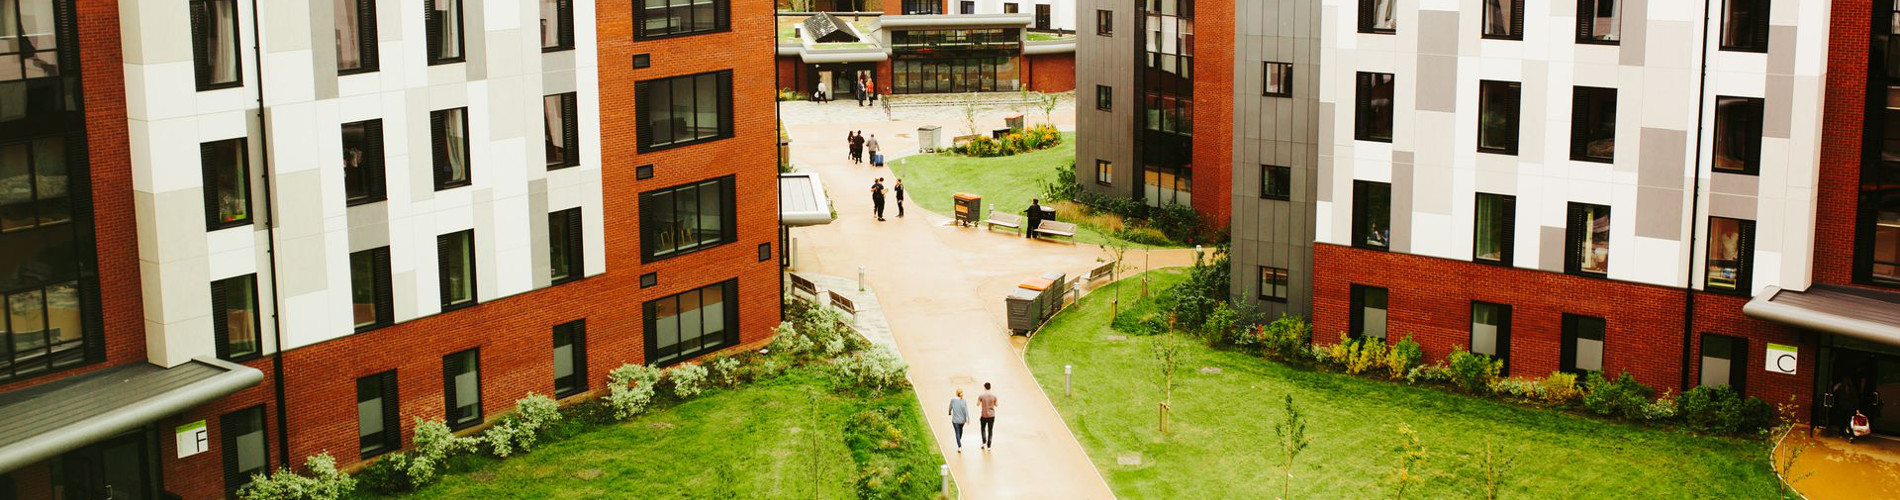 The Courtyard student accommodation